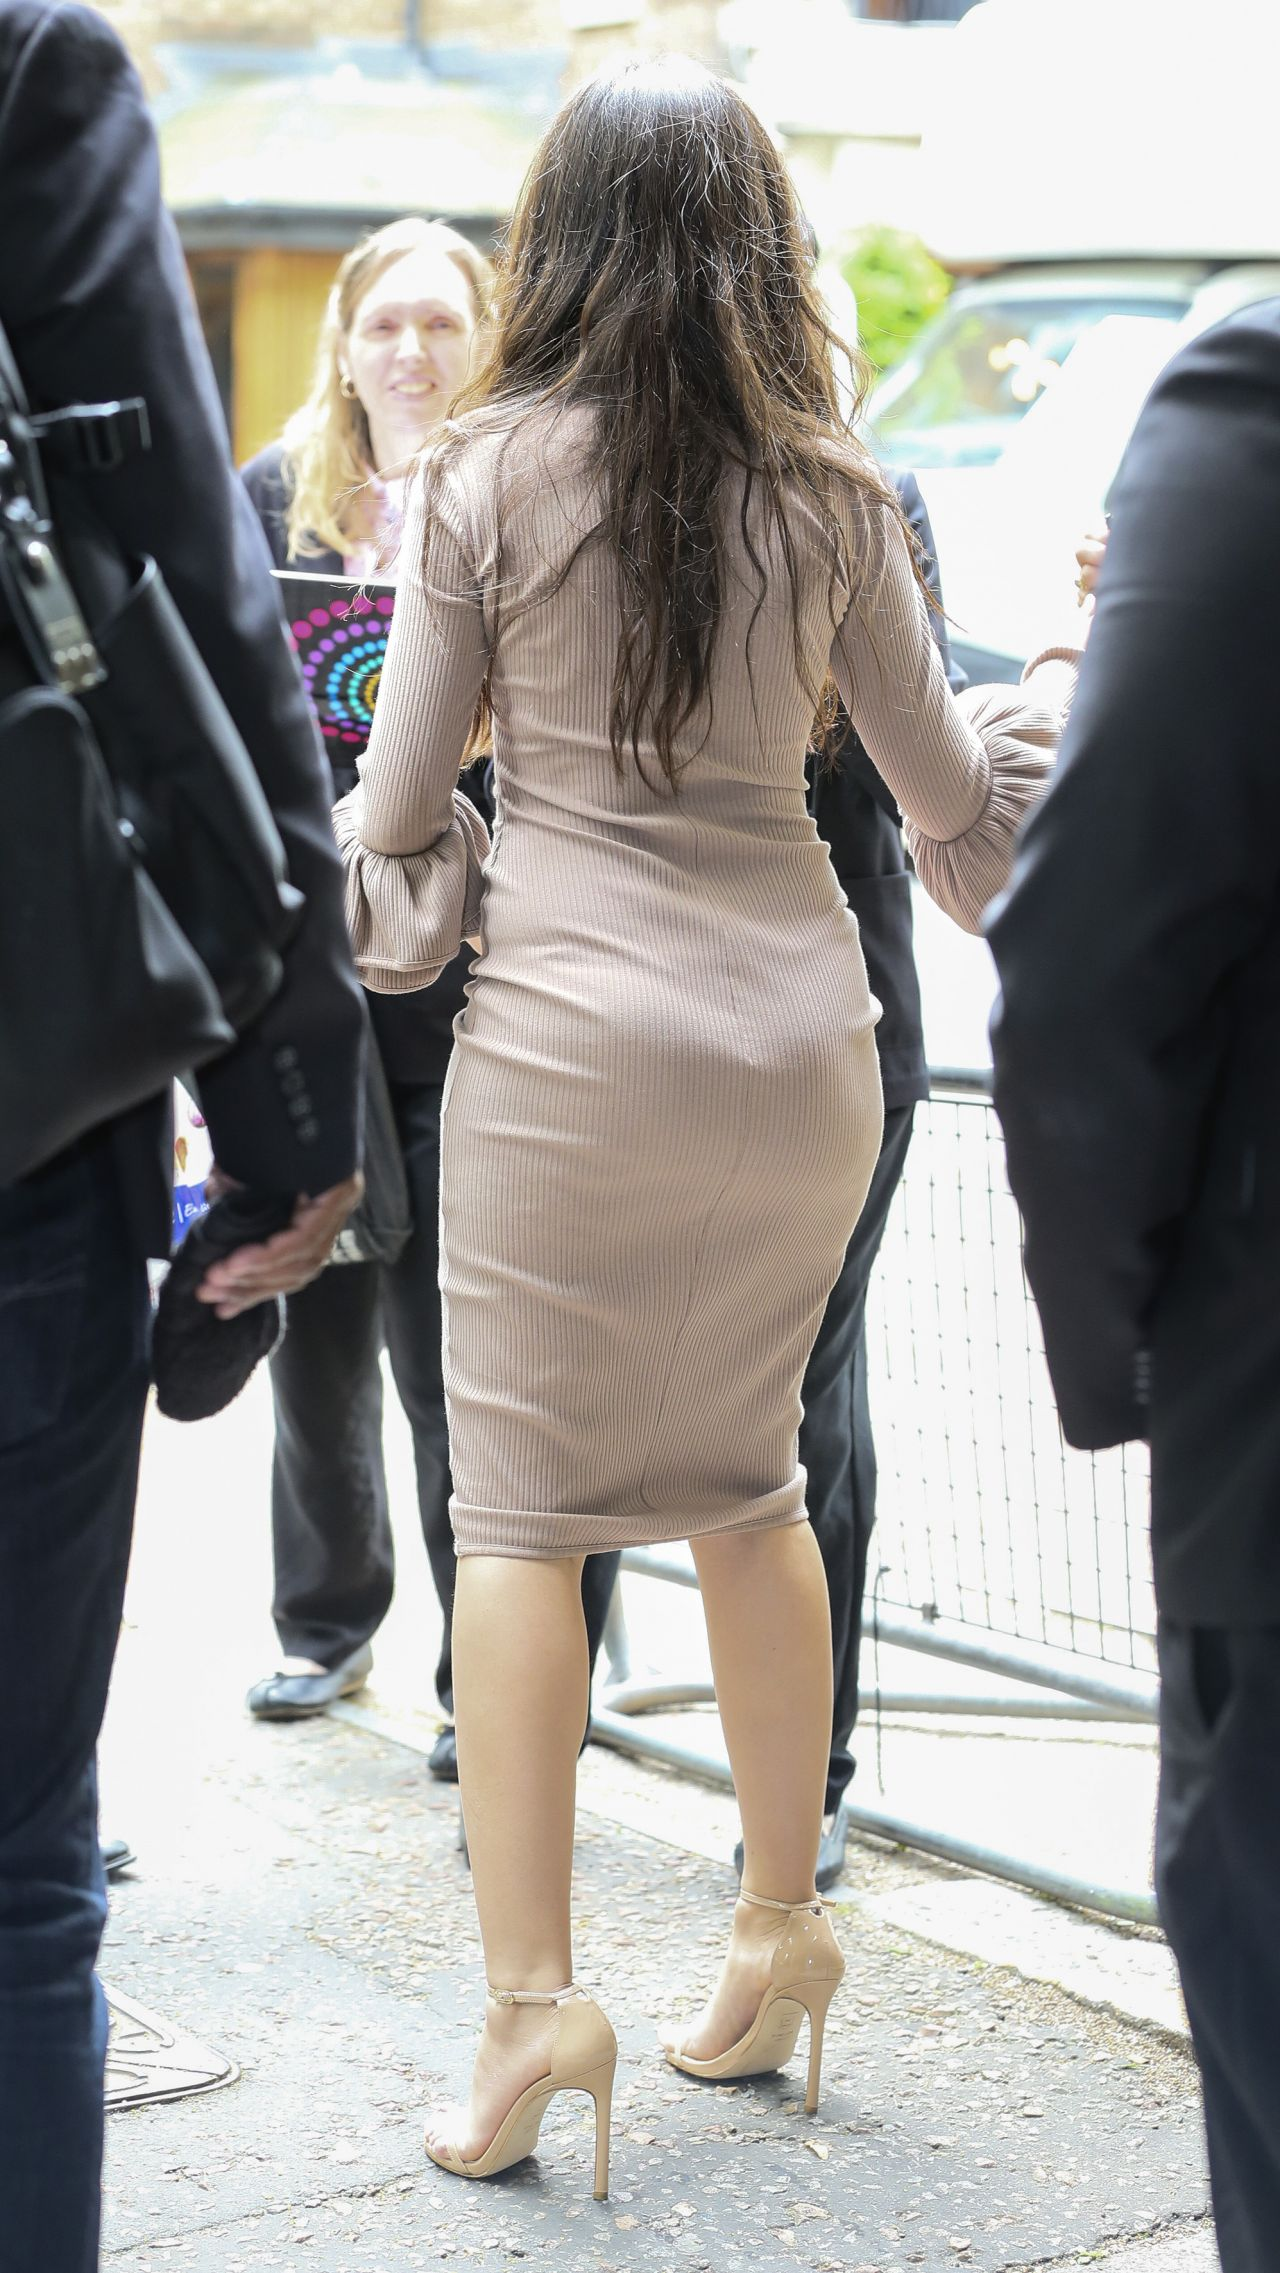 Camila Cabello At The Itv Studios In Central London Uk 05